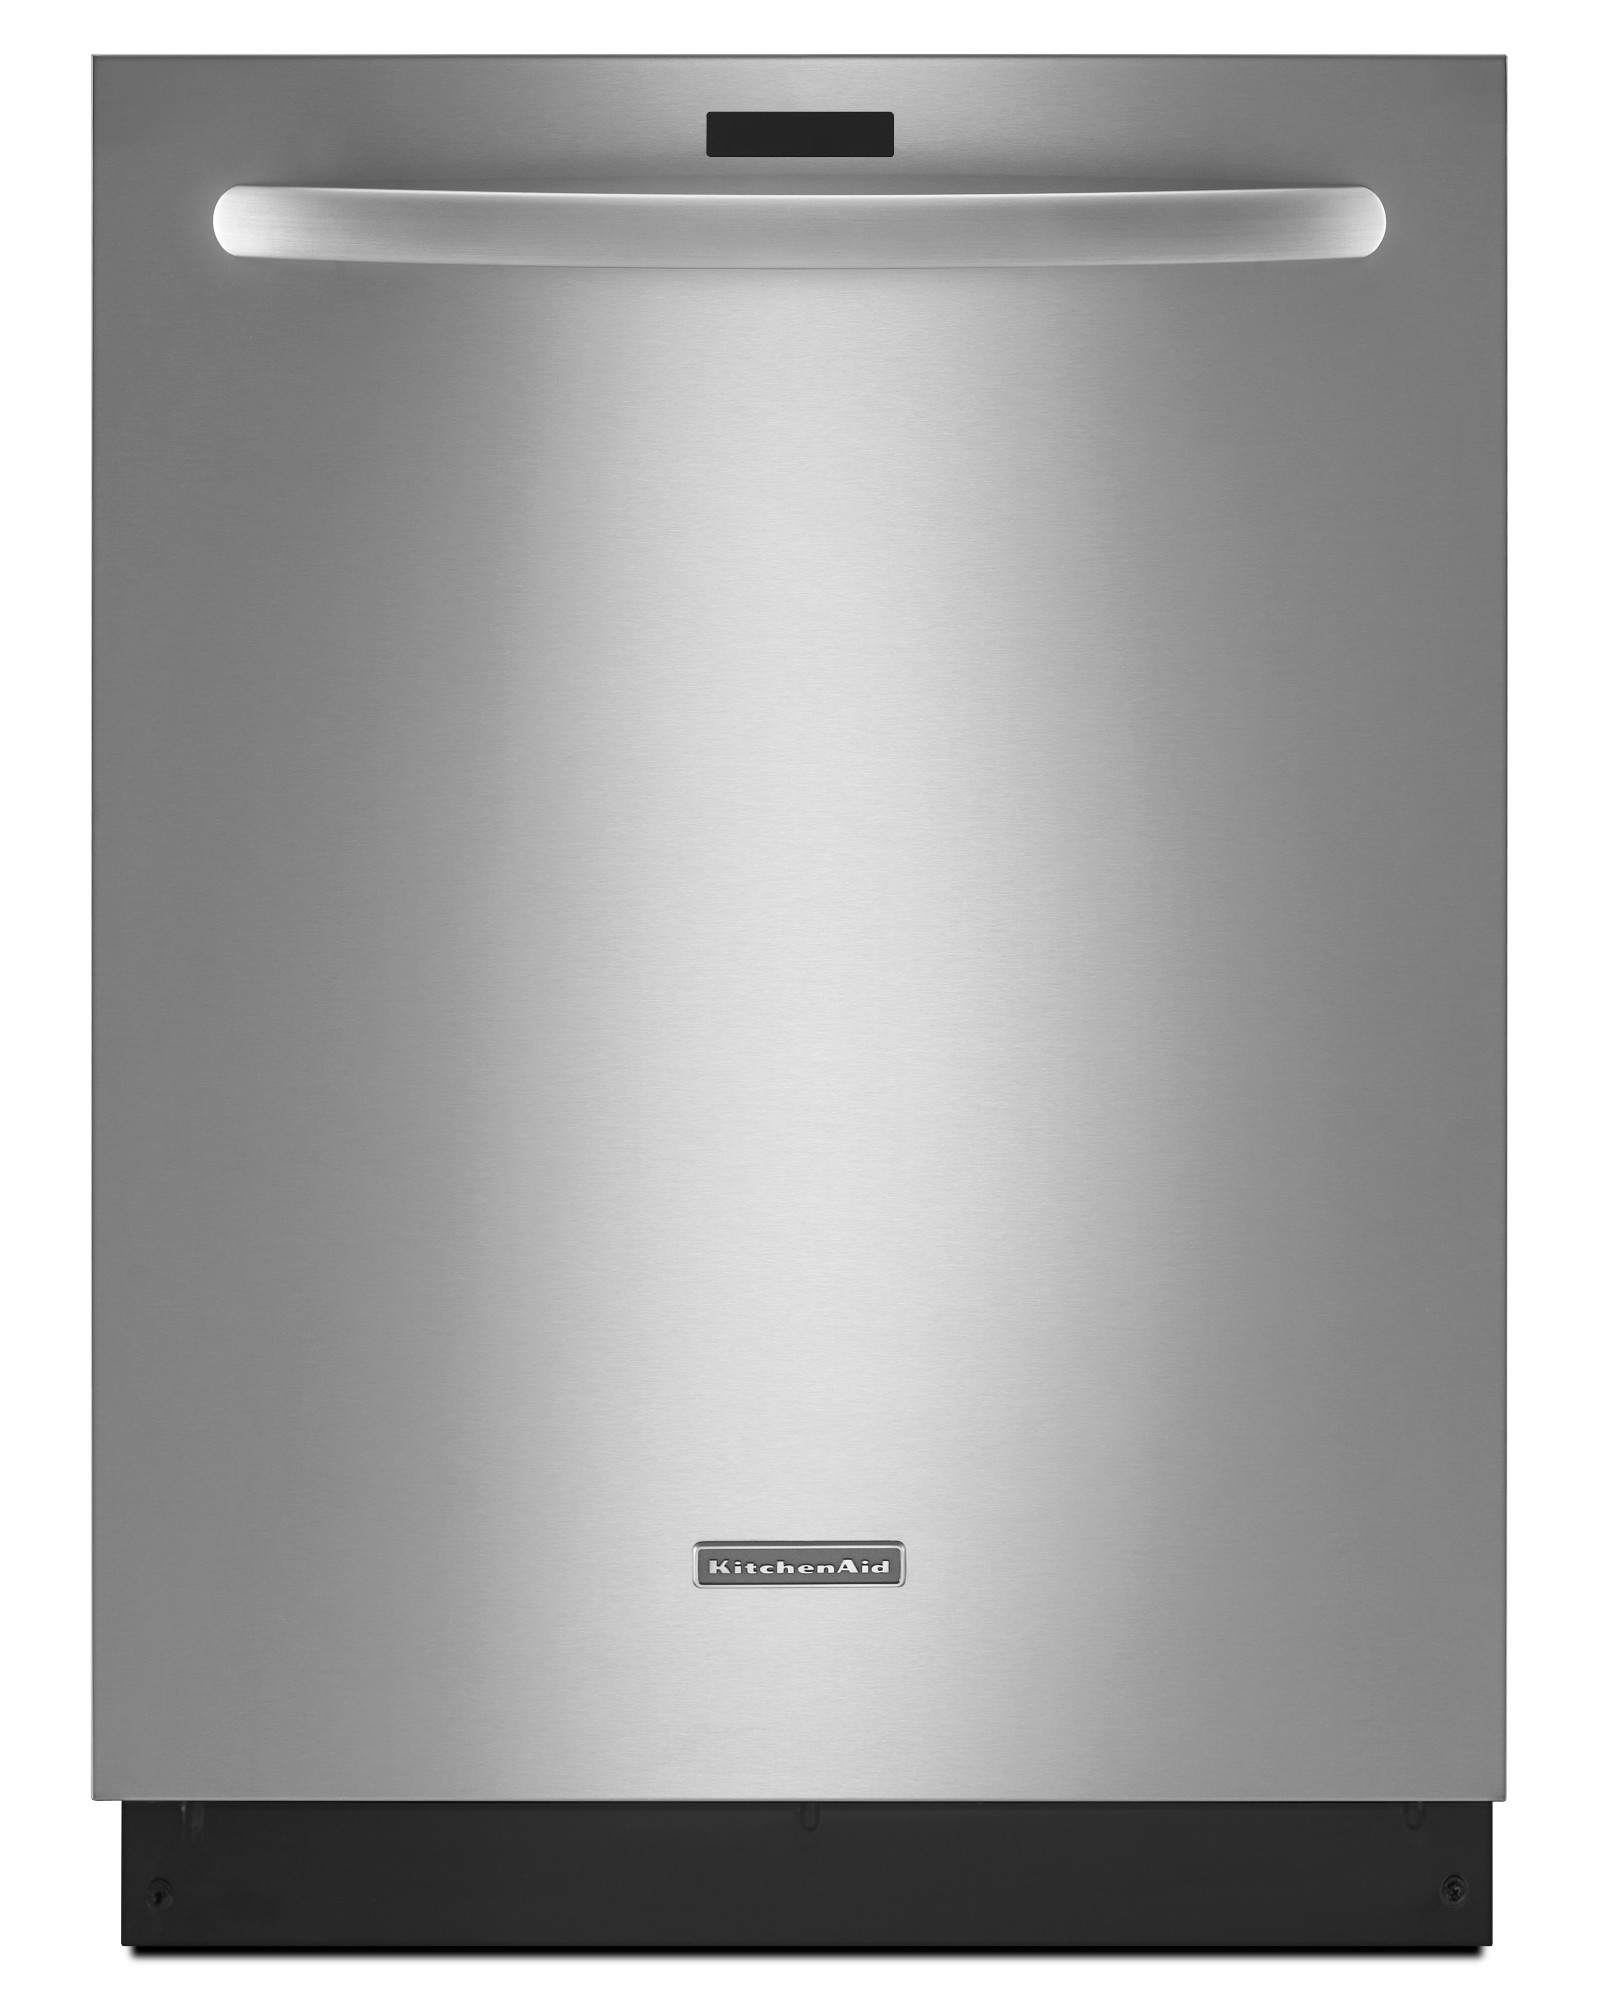 KitchenAid KDTM354DSS 24 Built-In 6-Cycle Dishwasher w/ Ultra-Fine Filter-Stainless Steel